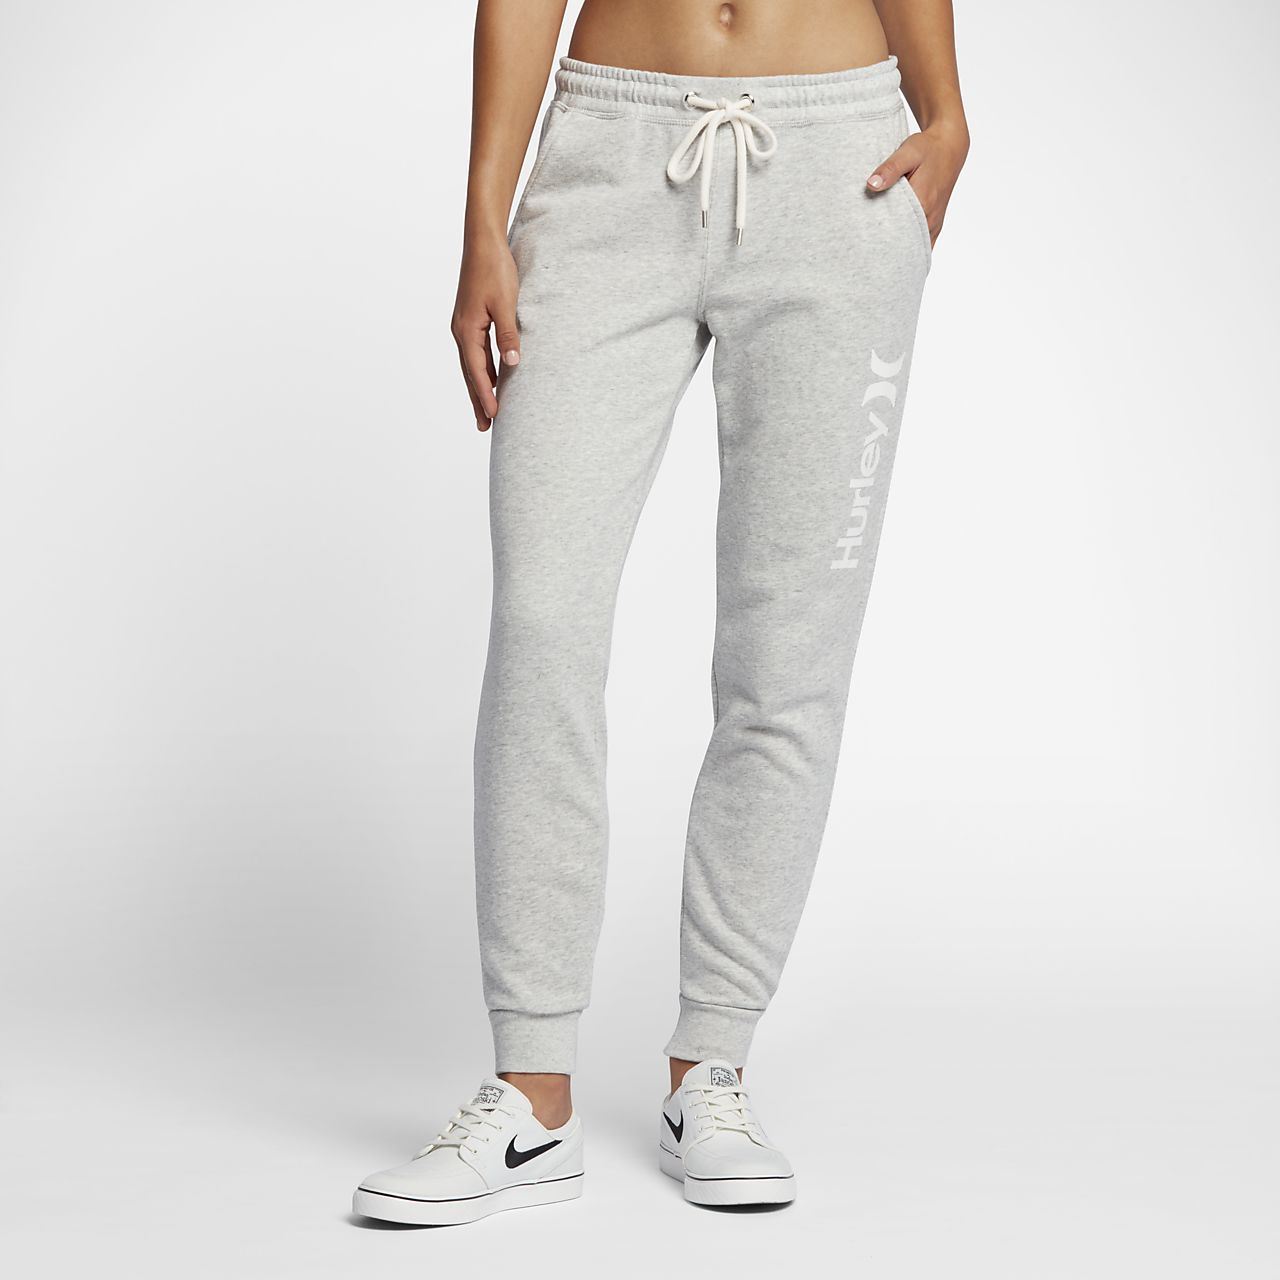 b2ee9ef88057 Hurley One And Only Pop Women s Fleece Track Trousers. Nike.com AU